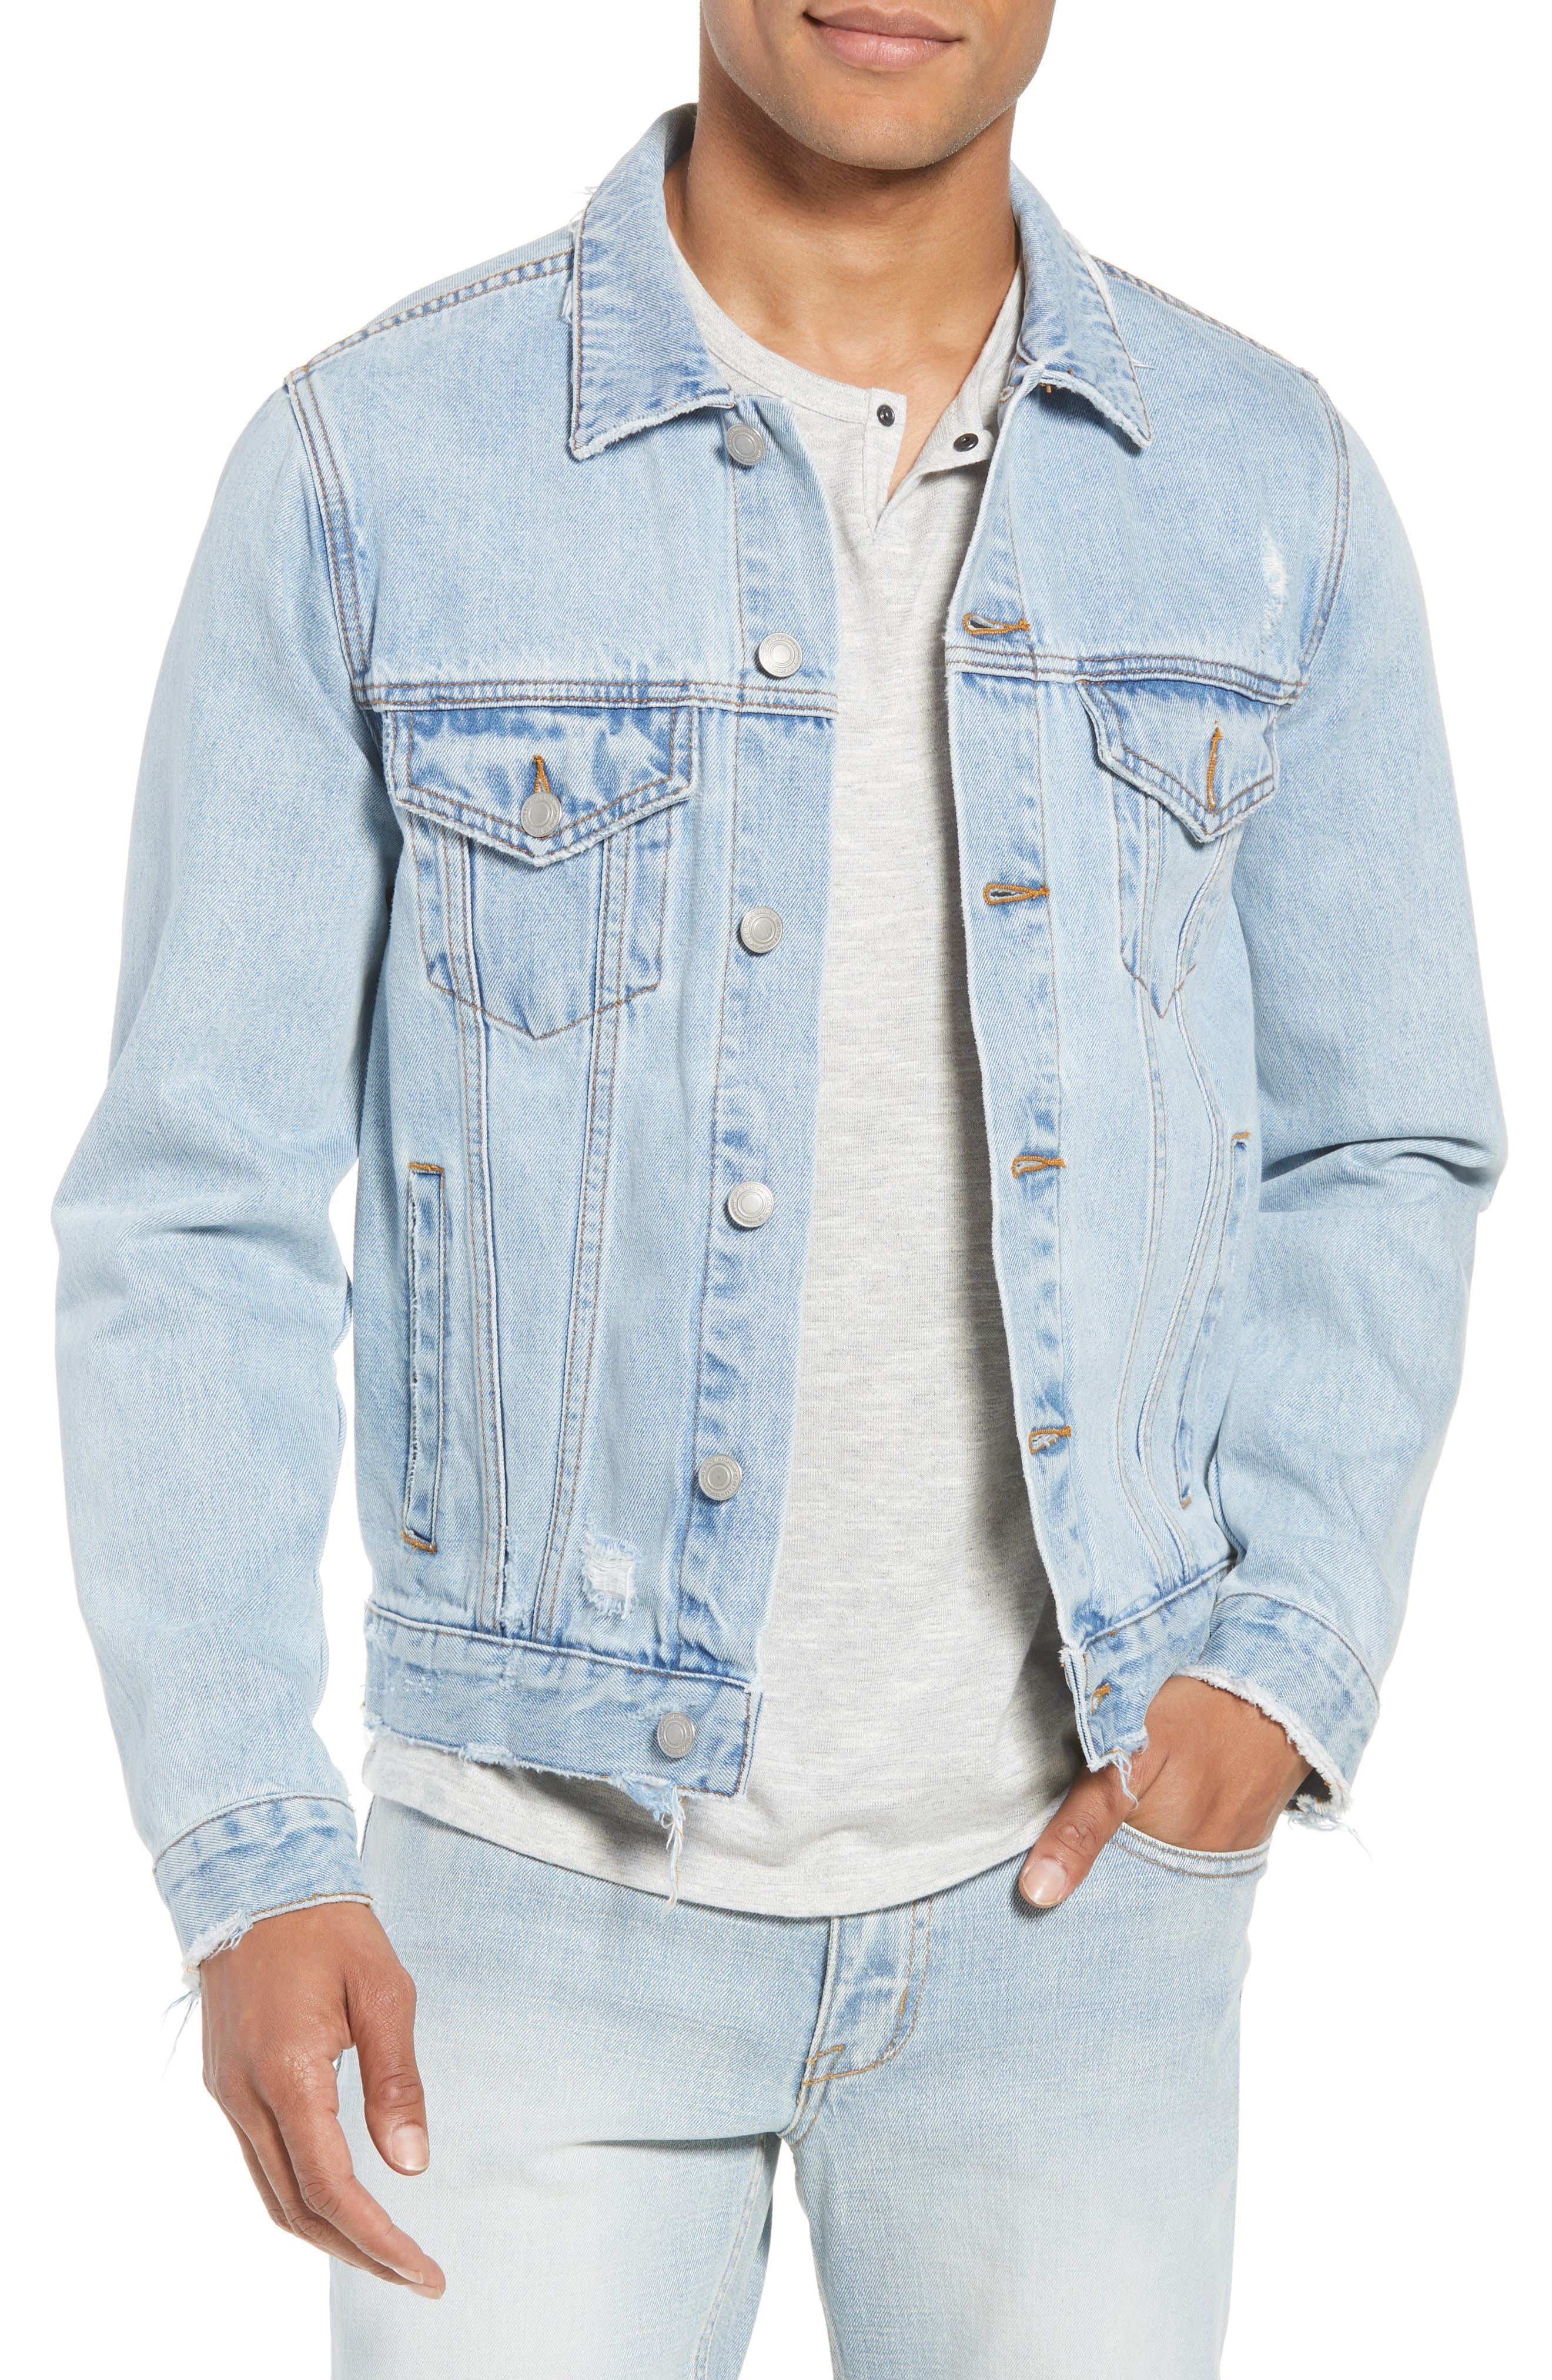 Type One Denim Jacket,                         Main,                         color, Beaten Indigo